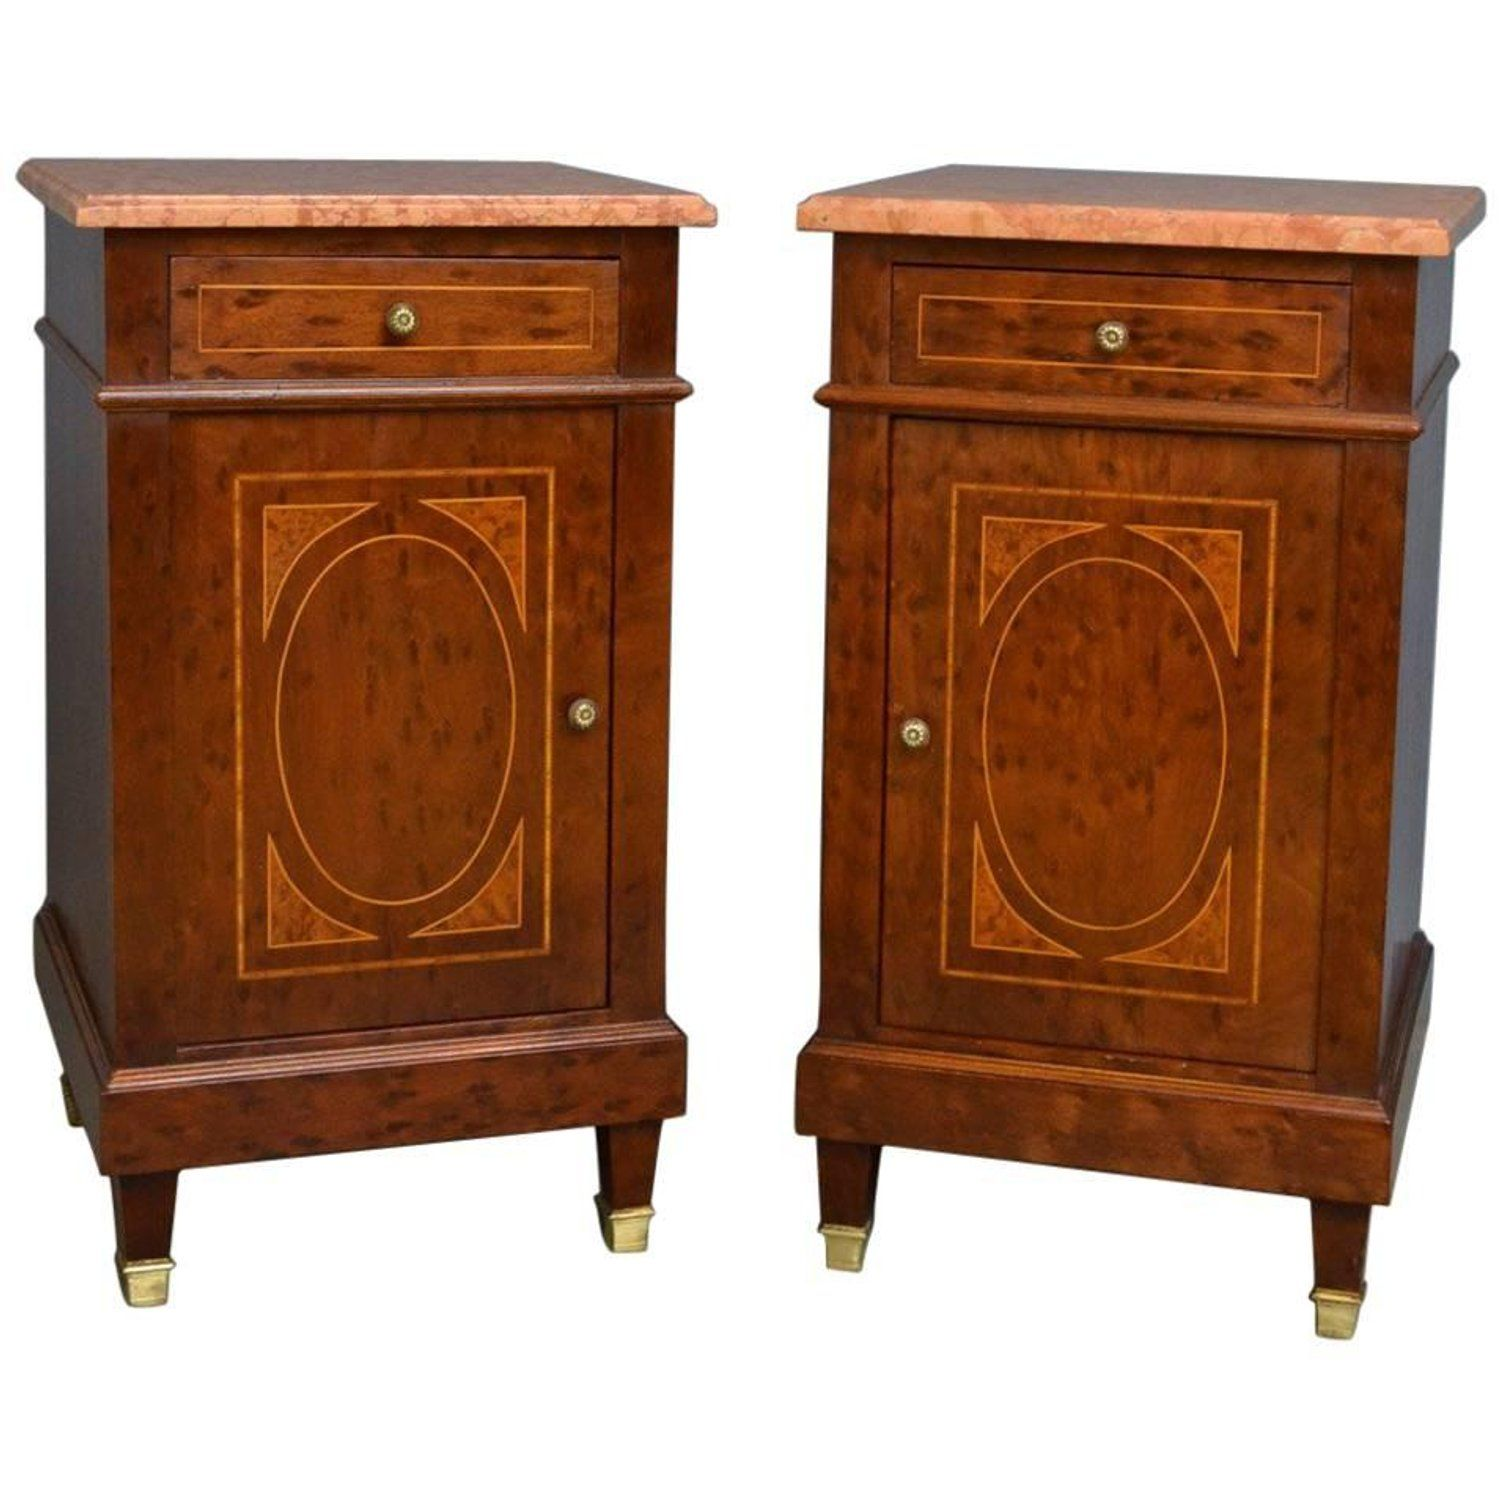 Pair of Antique Bedside Cabinets - Pair Of Antique Bedside Cabinets My 1stdibs Favorites Pinterest